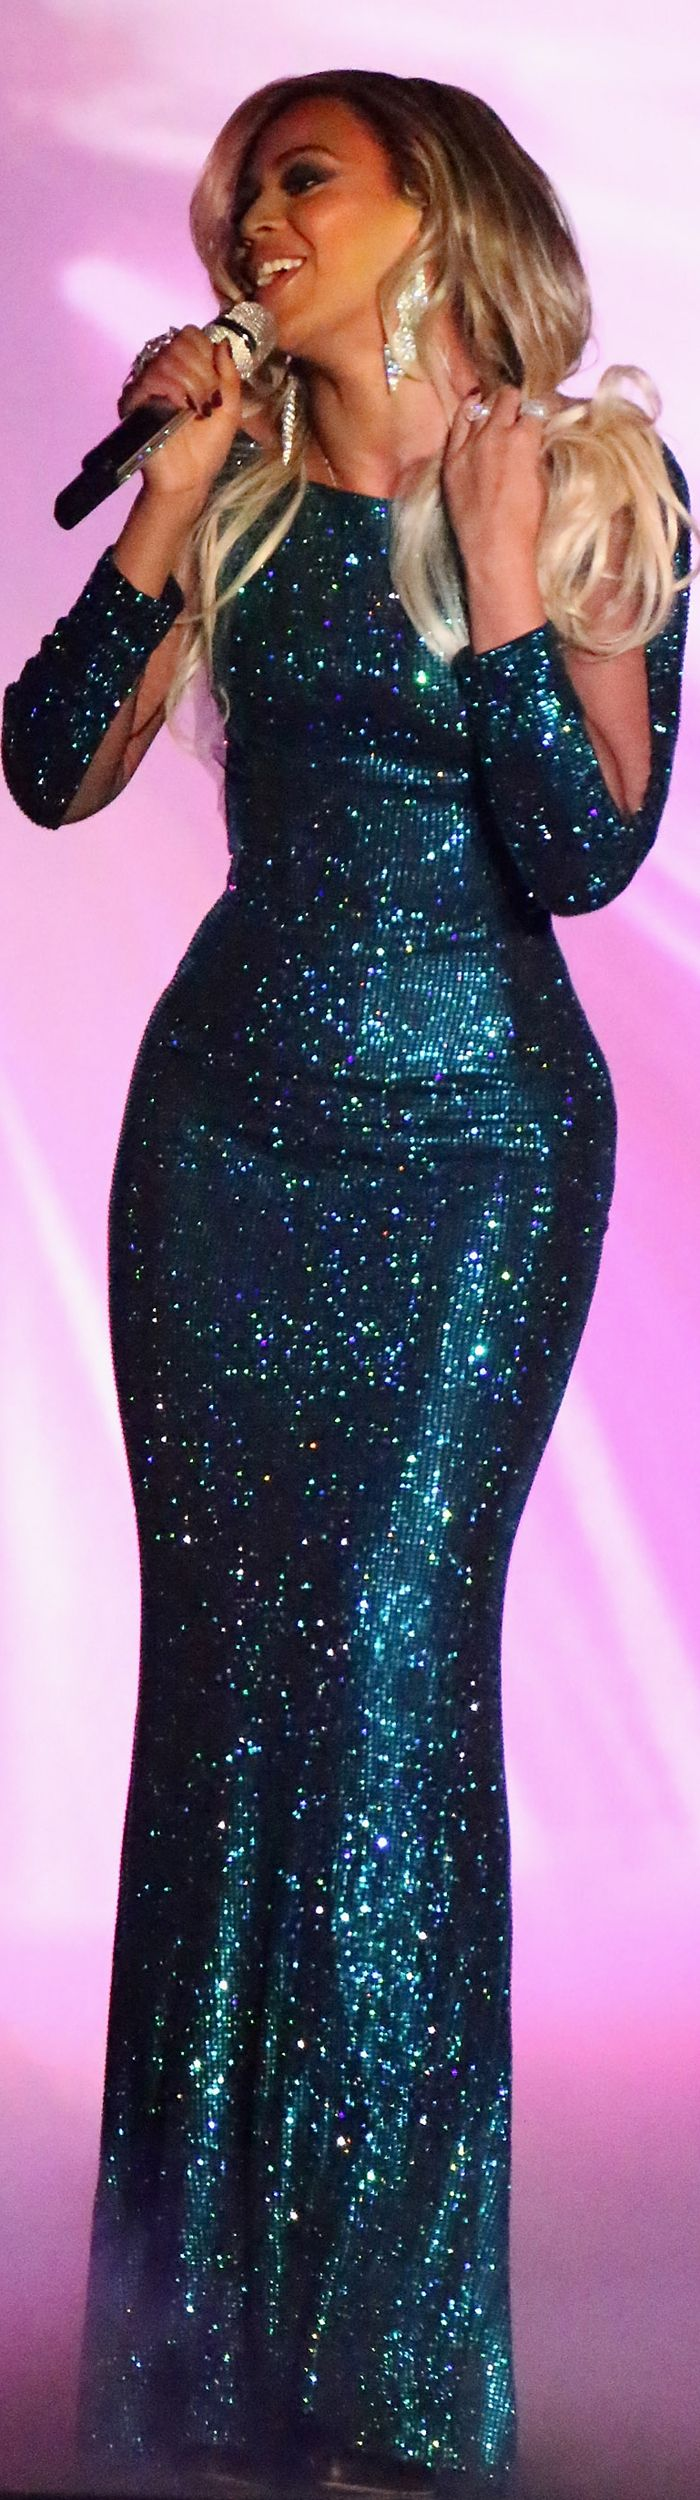 Beyonce (and her curves) hit the stage at the Brit Awards.